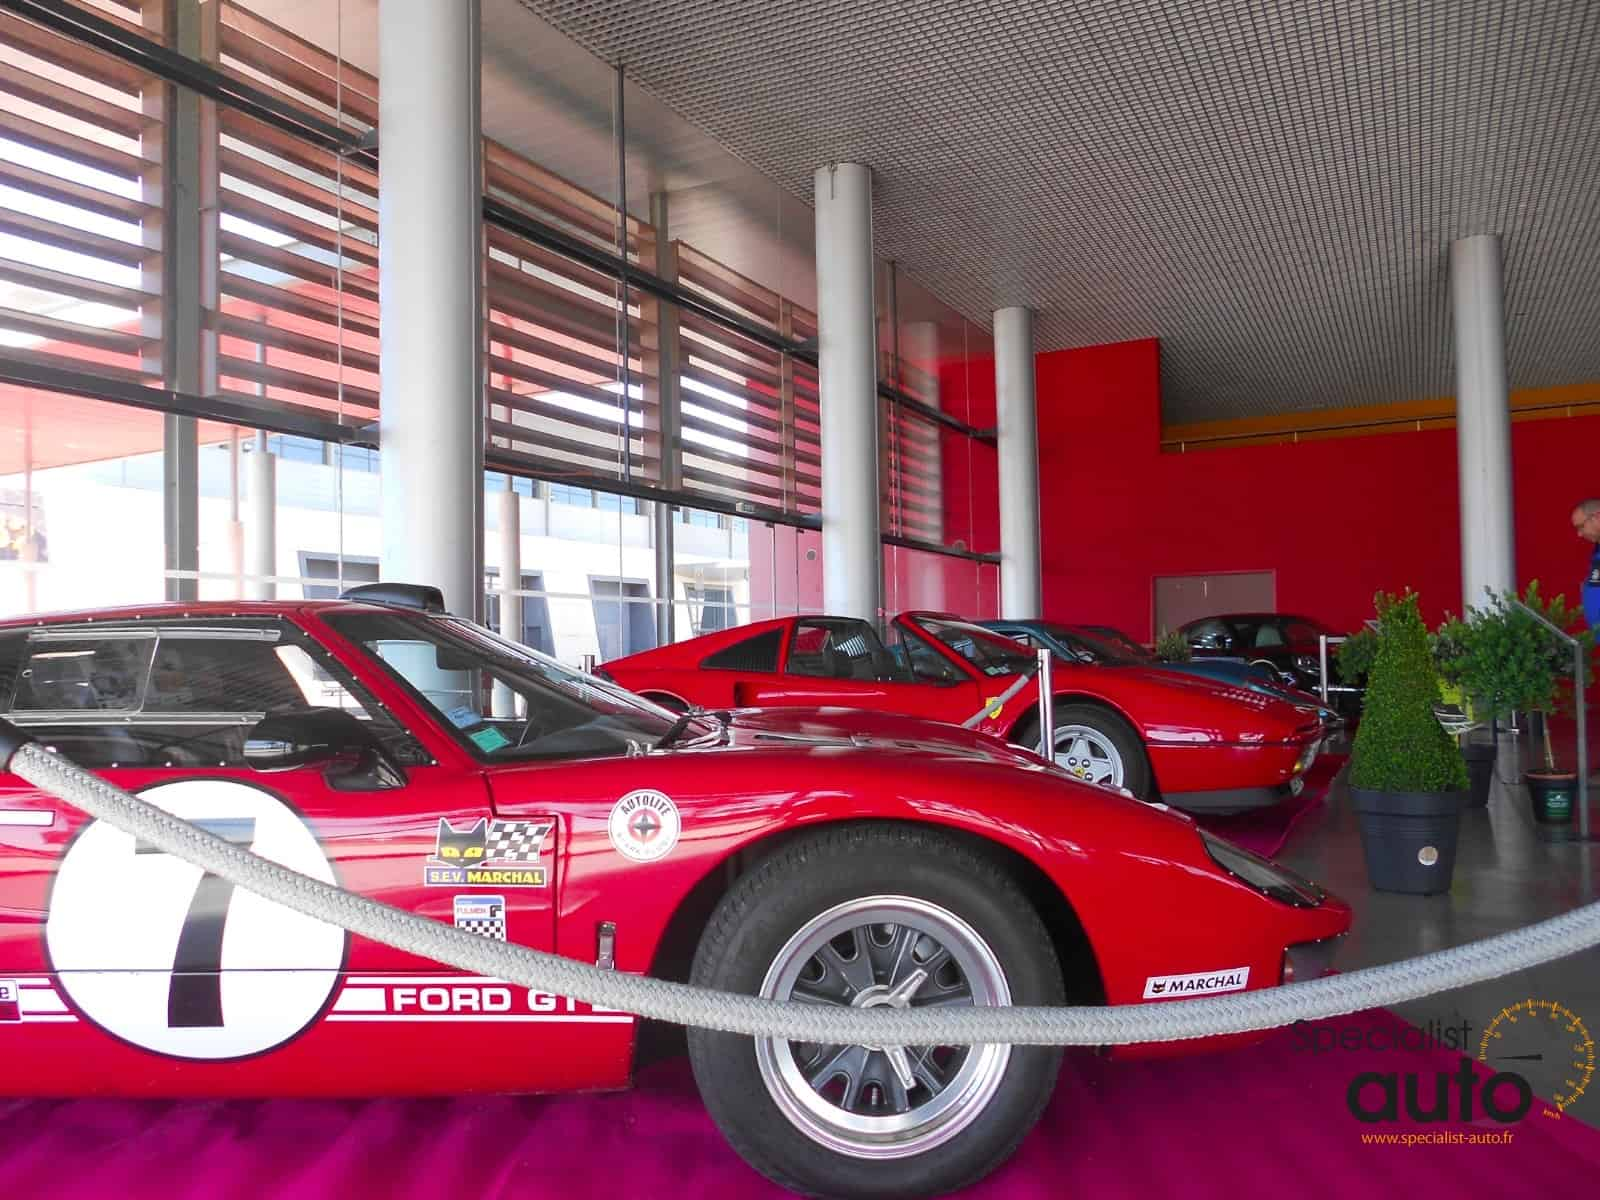 Salon Auto Montpellier Evènement Au Coeur Du Salon Prestige Et Collection à Montpellier